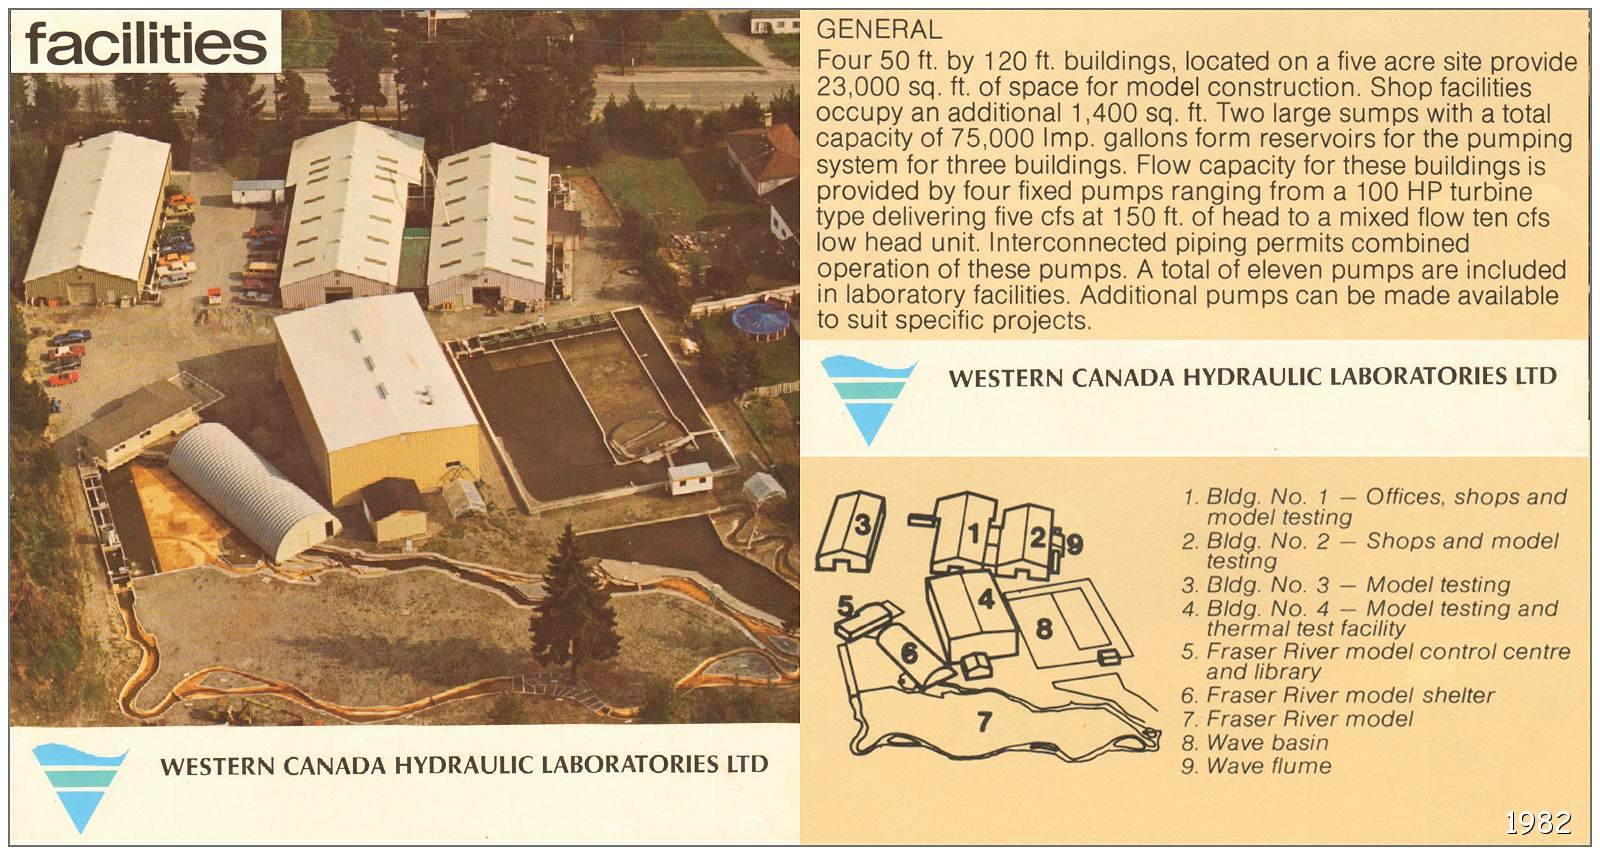 WESTERN CANADA HYDRAULIC LABORATORIES LTD